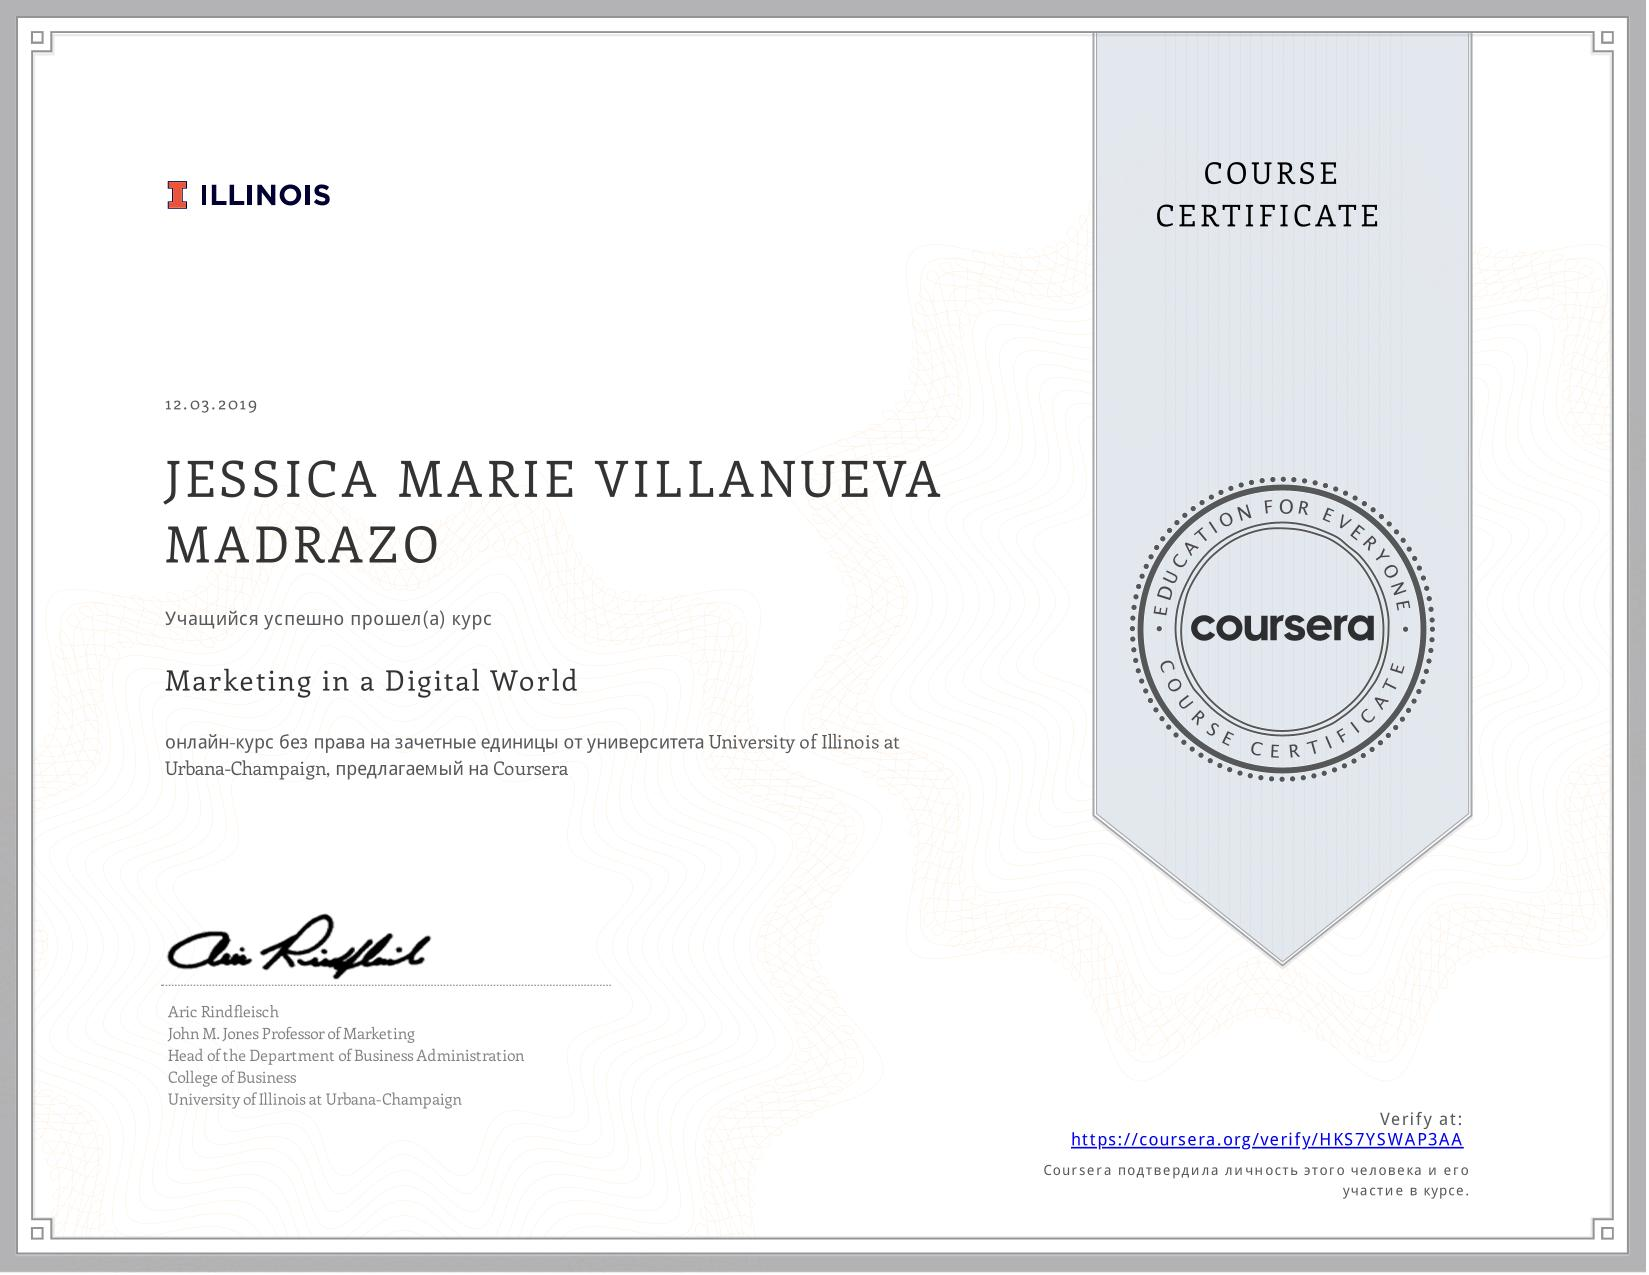 View certificate for JESSICA MARIE VILLANUEVA  MADRAZO, Marketing in a Digital World, an online non-credit course authorized by University of Illinois at Urbana-Champaign and offered through Coursera